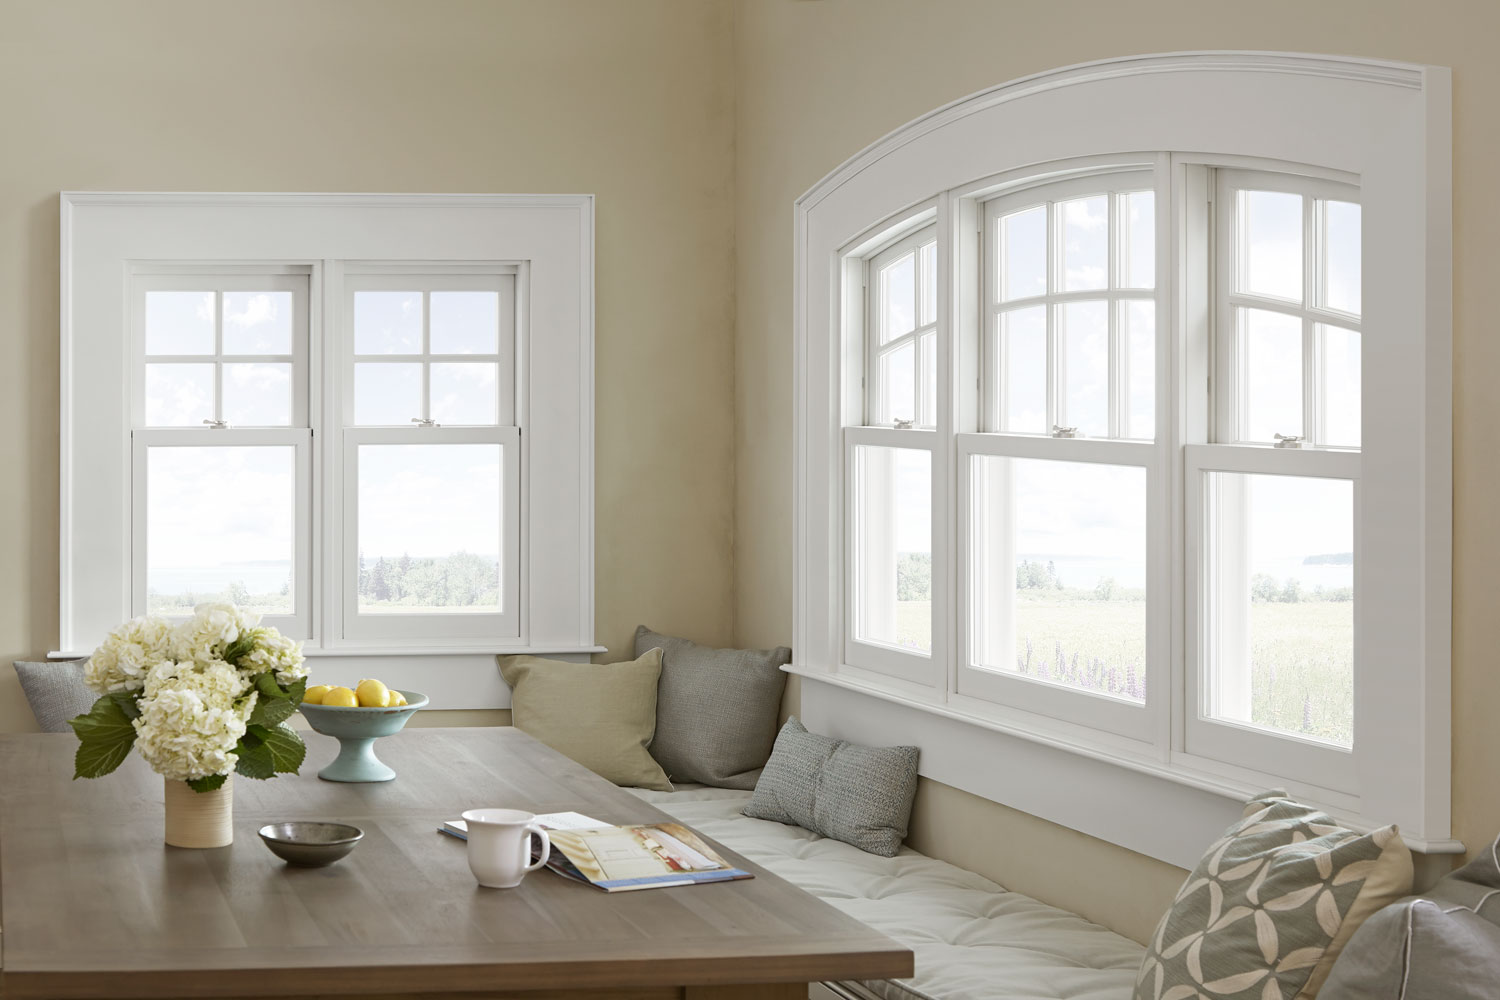 at awning love pin double marvin ultimate hung cream my windows thanks coconut new matthew